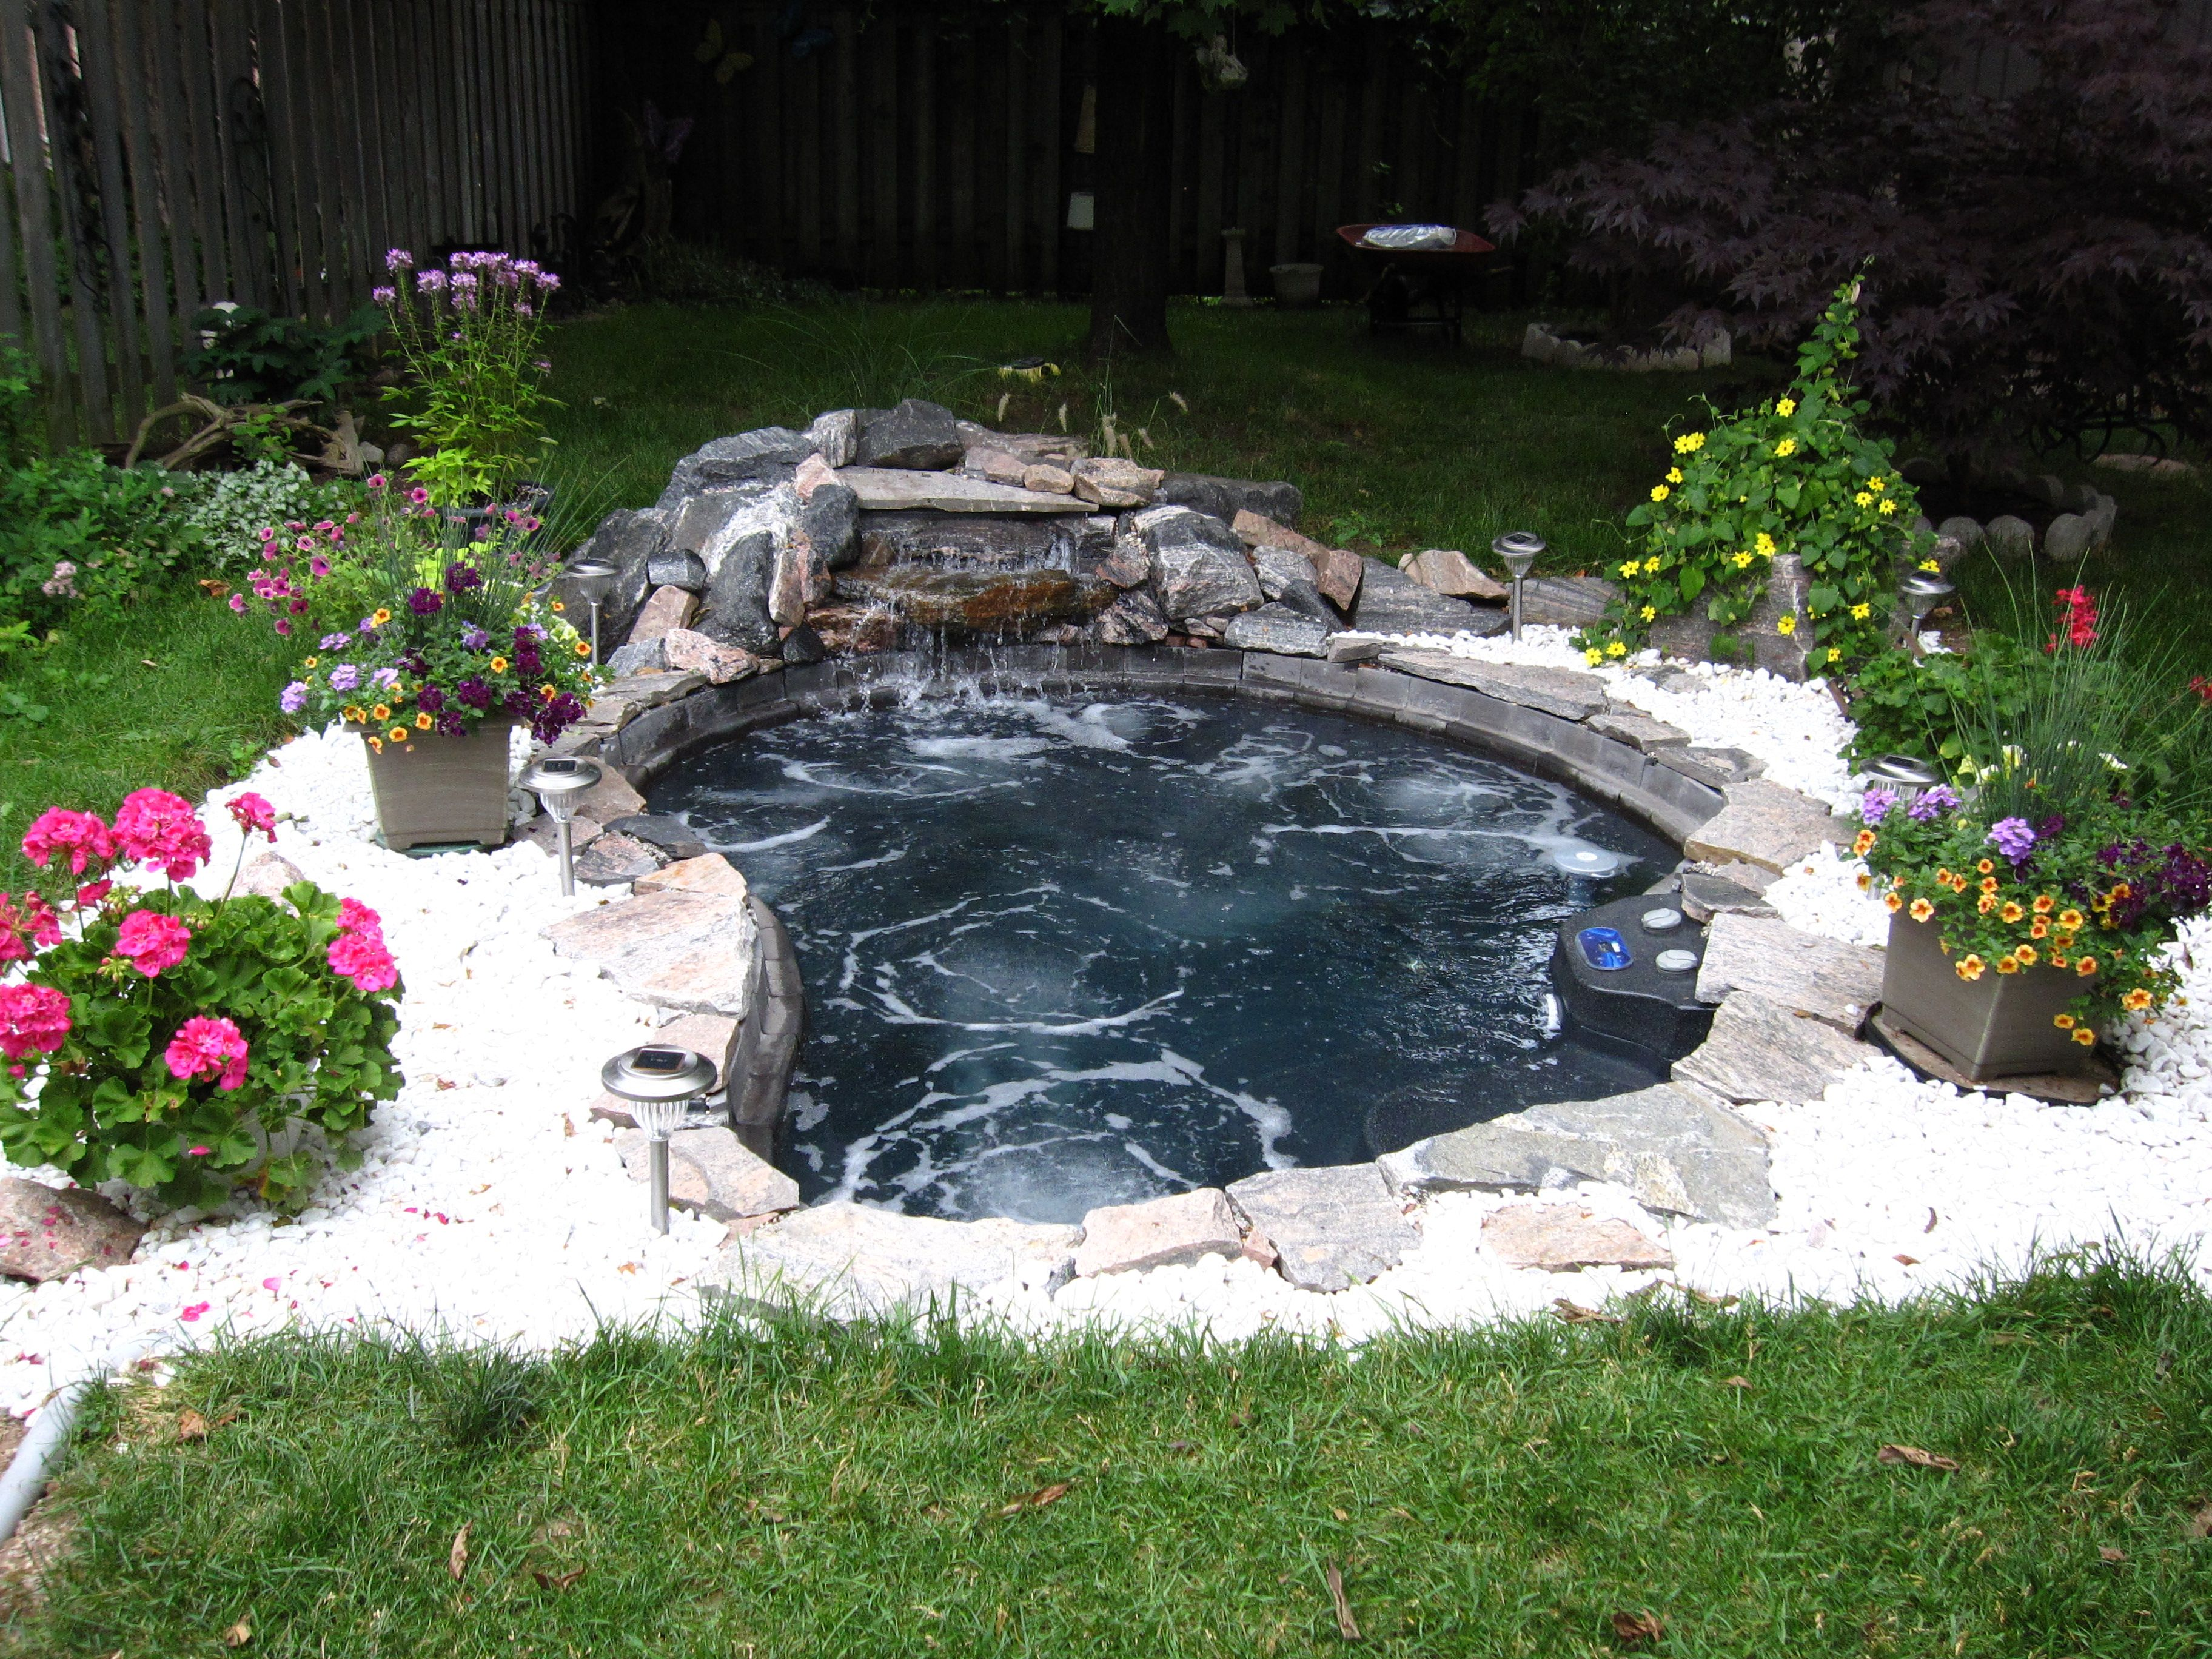 thinking of a large in-ground spa with a waterfall feature ...